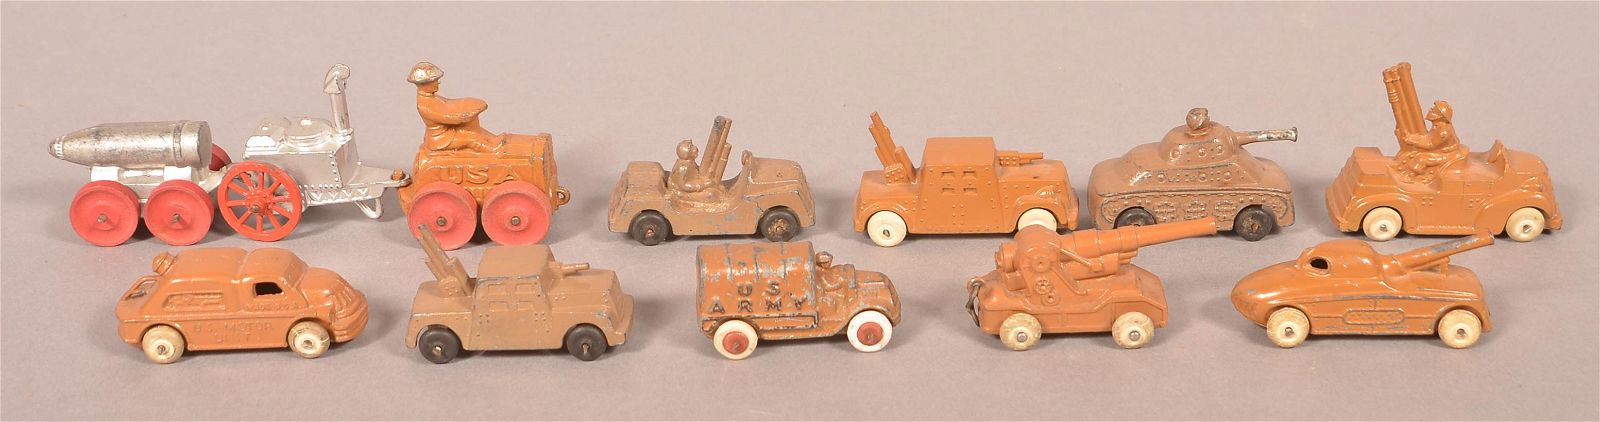 12 U.S. Military Painted Cast Metal Toy Vehicles.